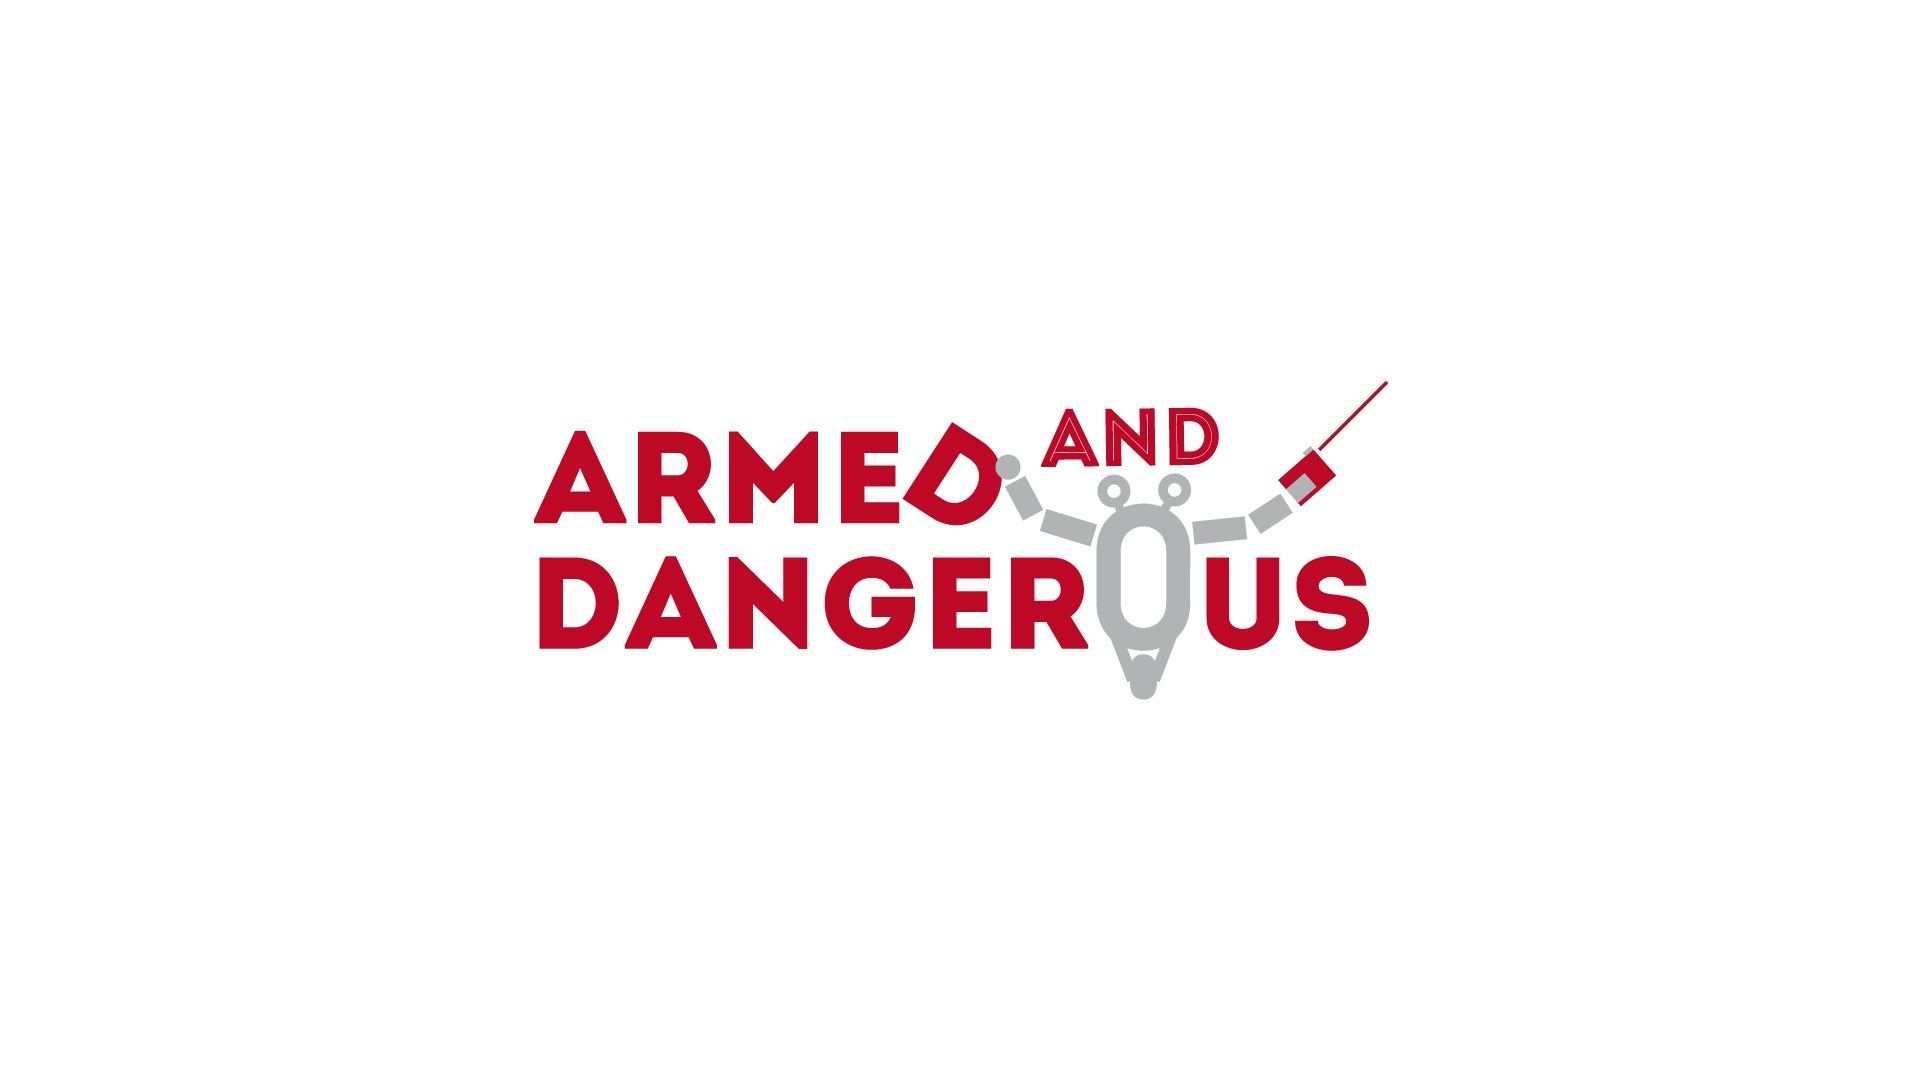 Armed and Dangerous wallpaper 2